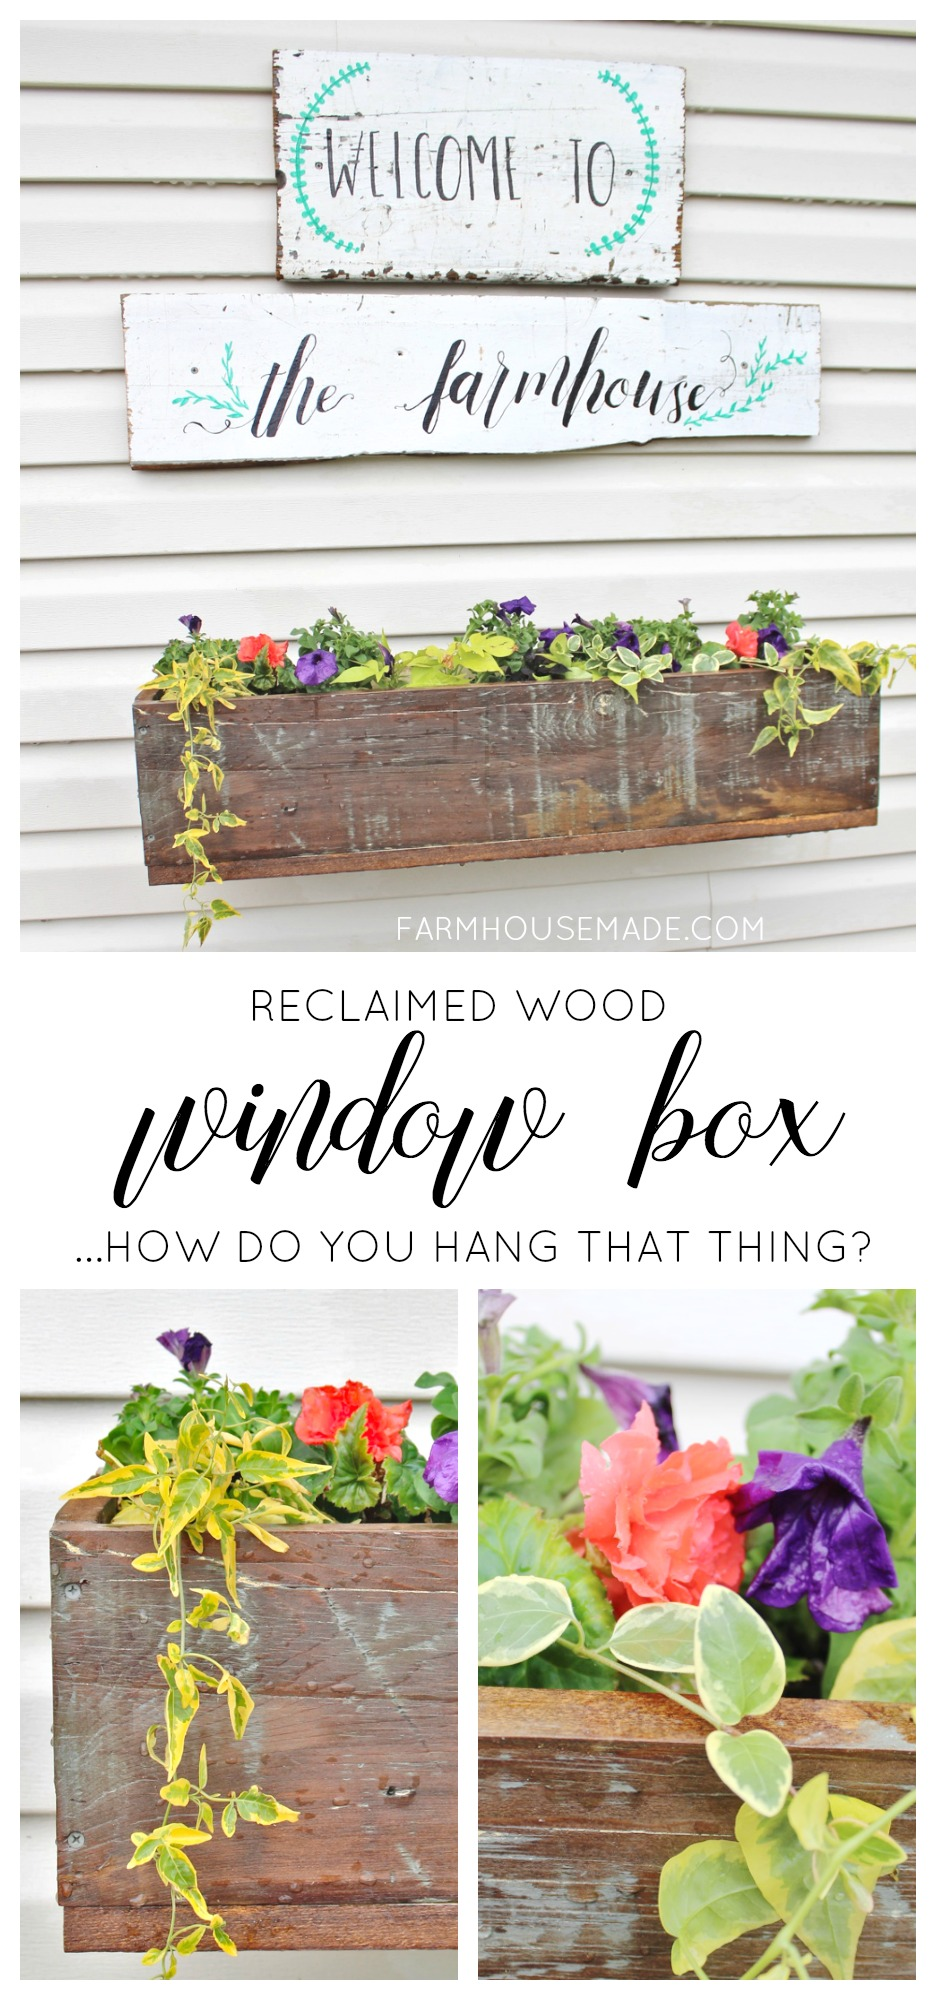 How To Make And Hang A Window Box On Vinyl Siding